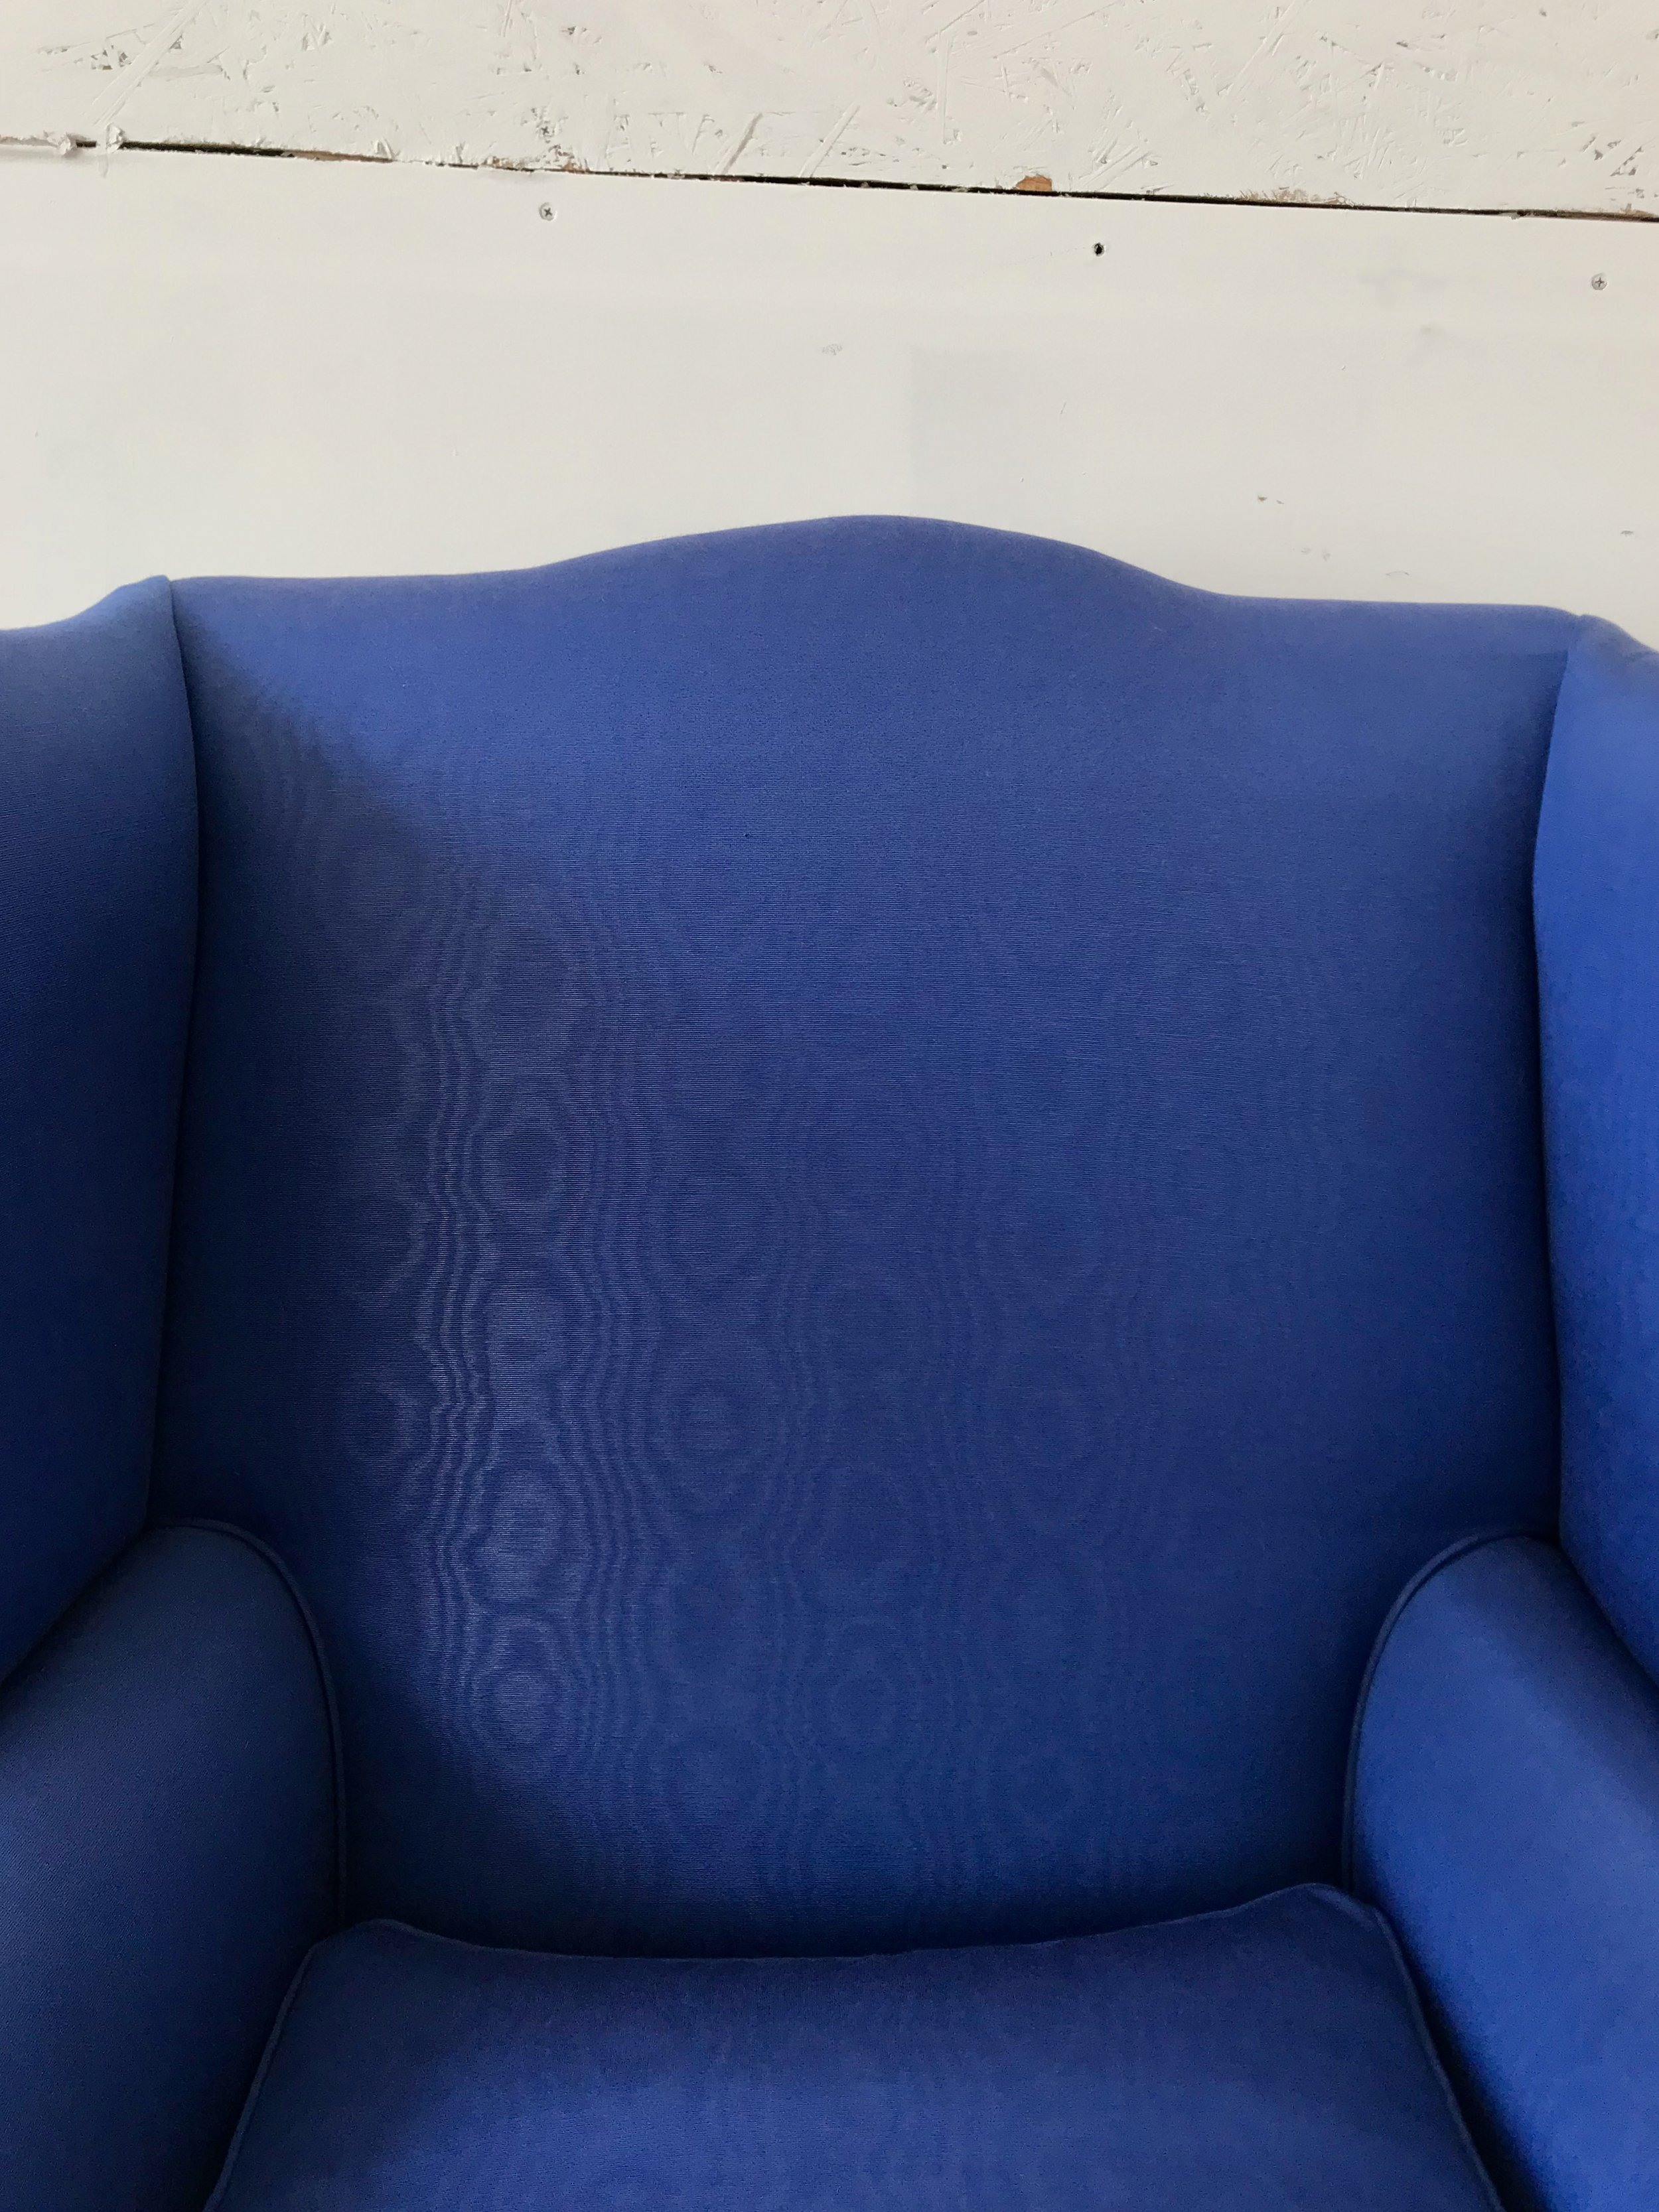 Modern upholstery with Edge Upholstery.